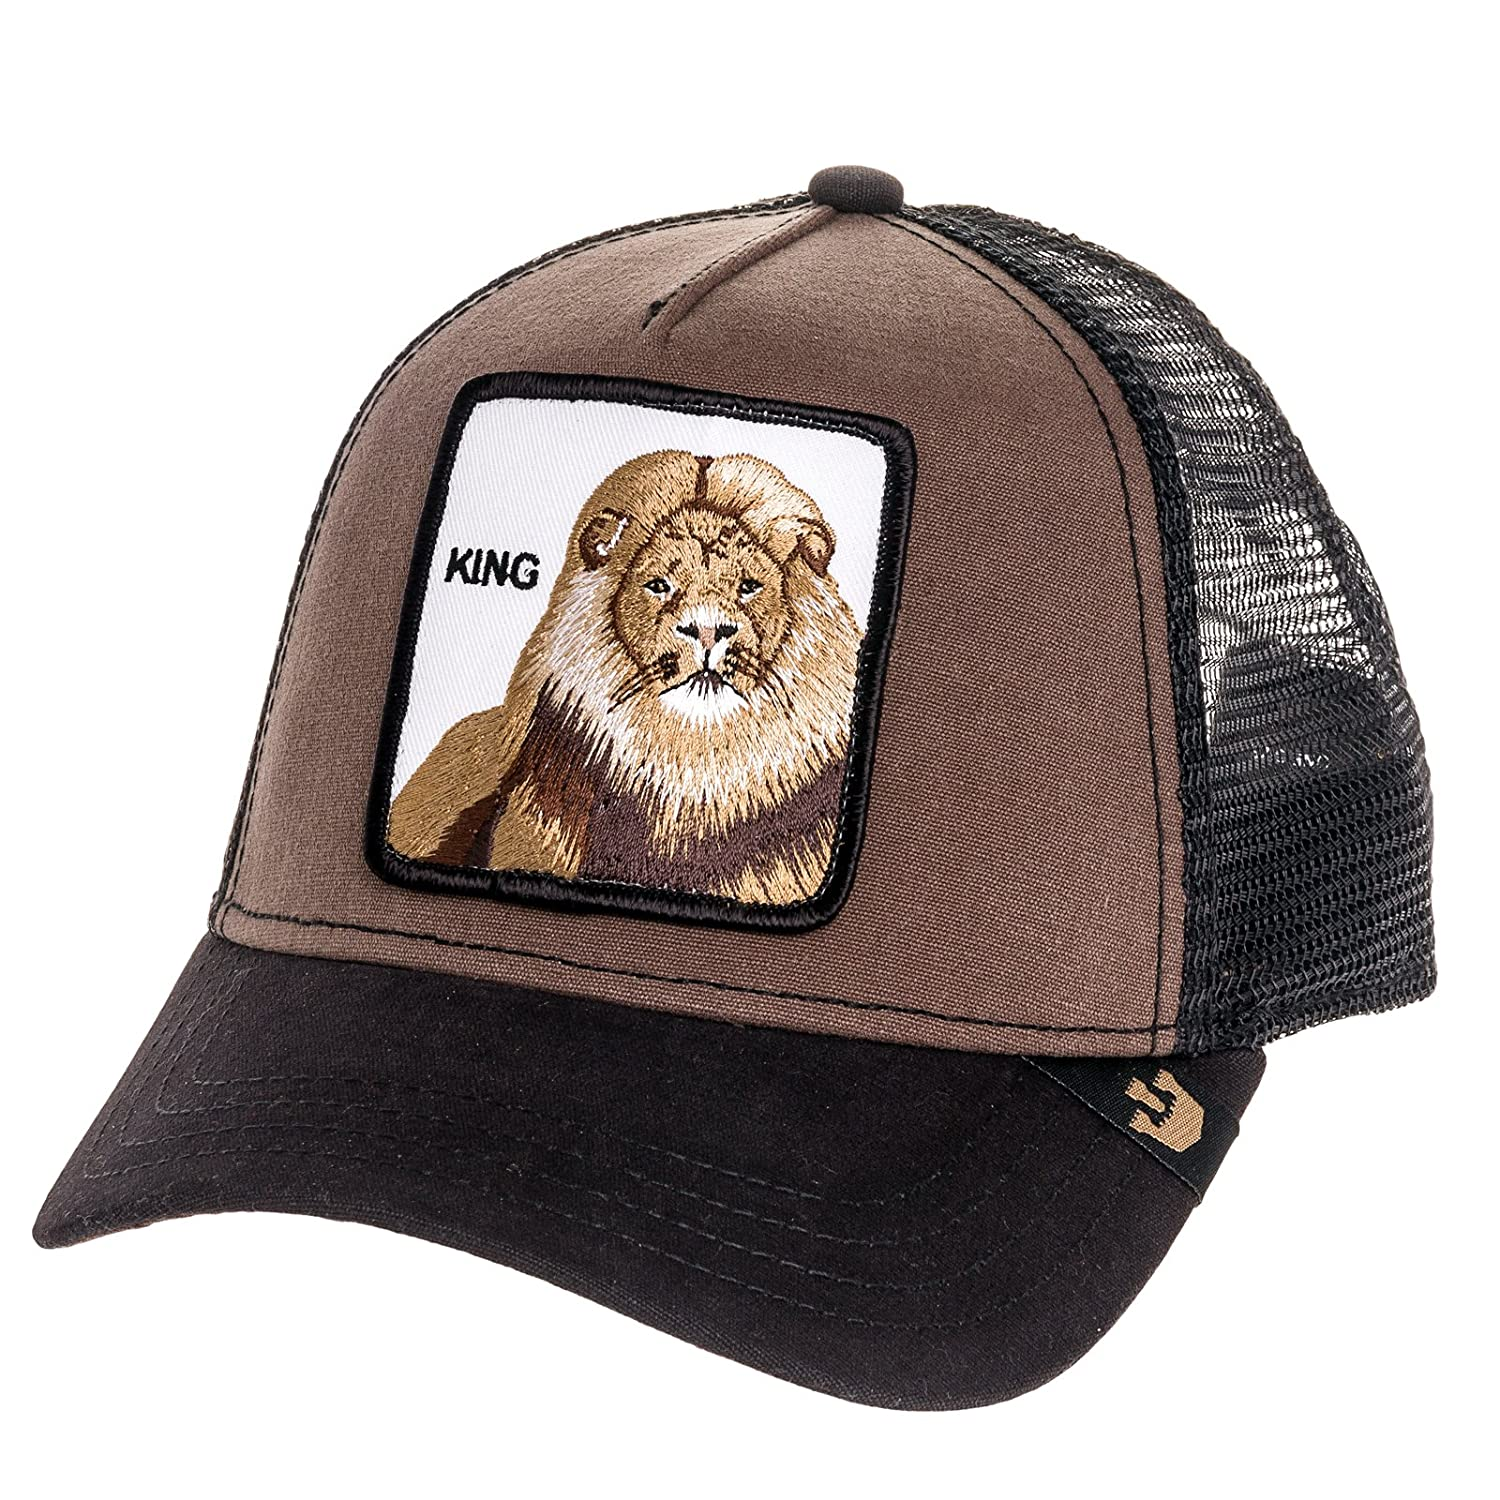 25b48910 Goorin Bros Mens King Lion Patch Trucker Cap Hat (Brown)